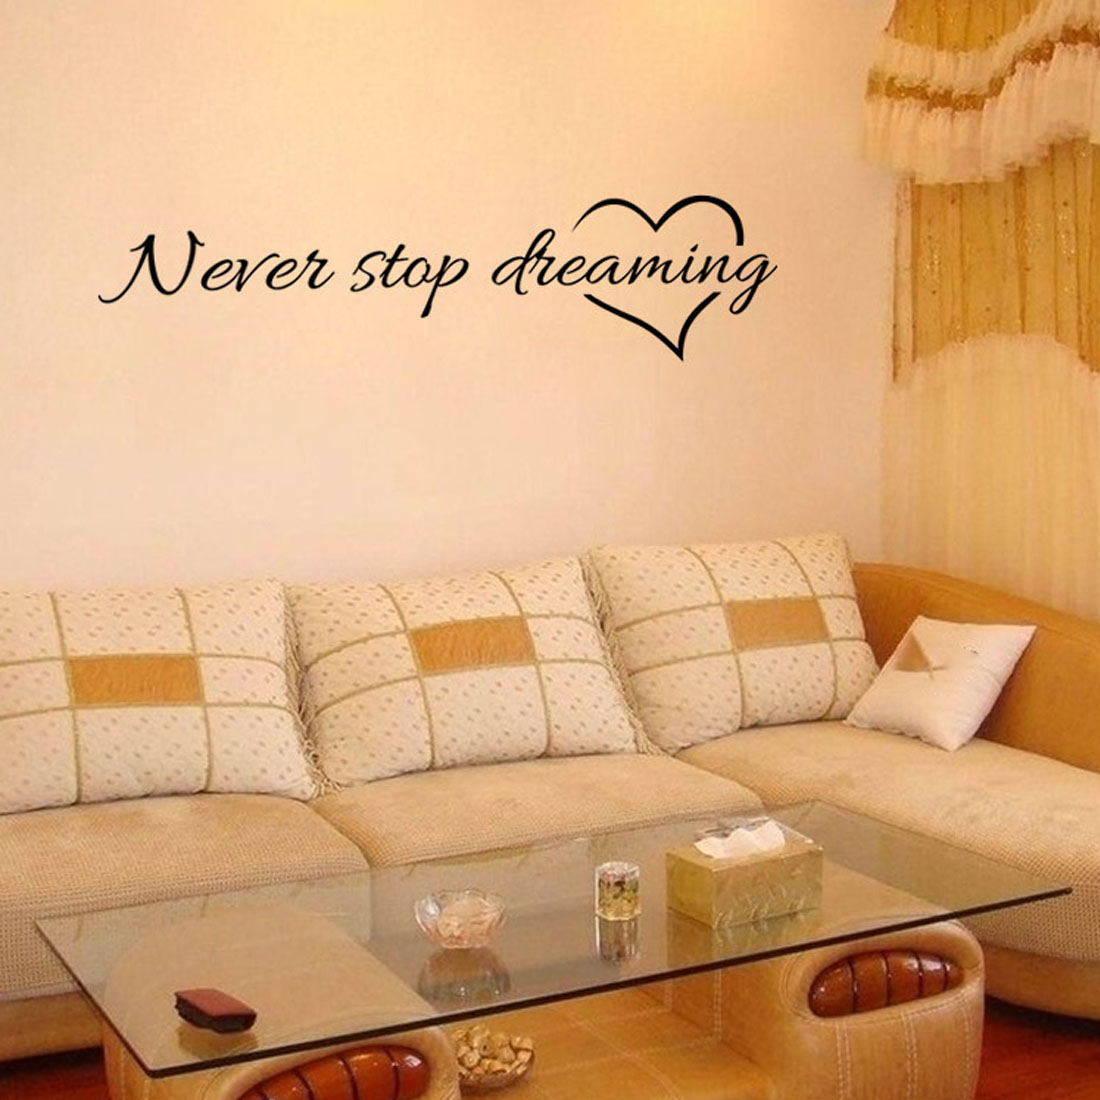 Never stop dreaming wall stickers living room quarto decorative ...